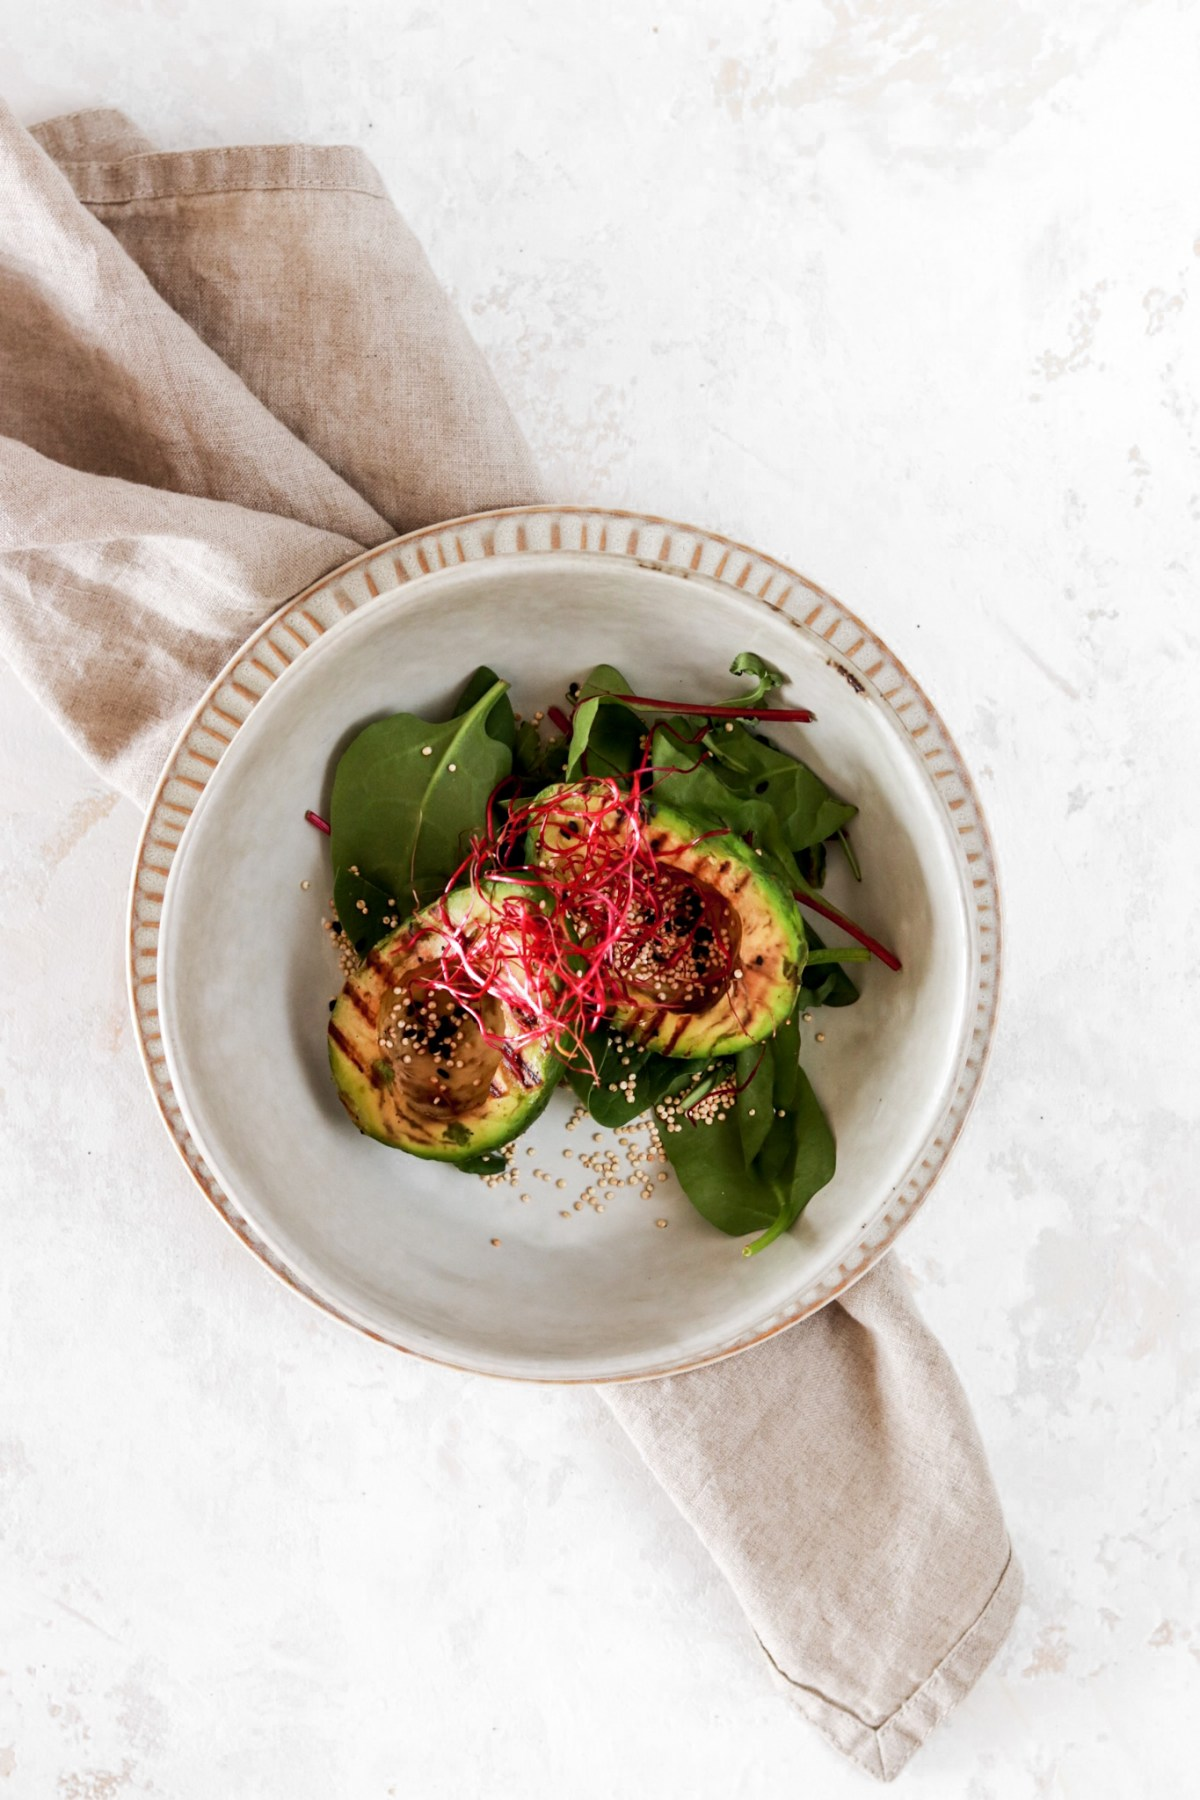 Grilled Avocado with Roasted Quinoa (Vegan & Gluten Free) From Above